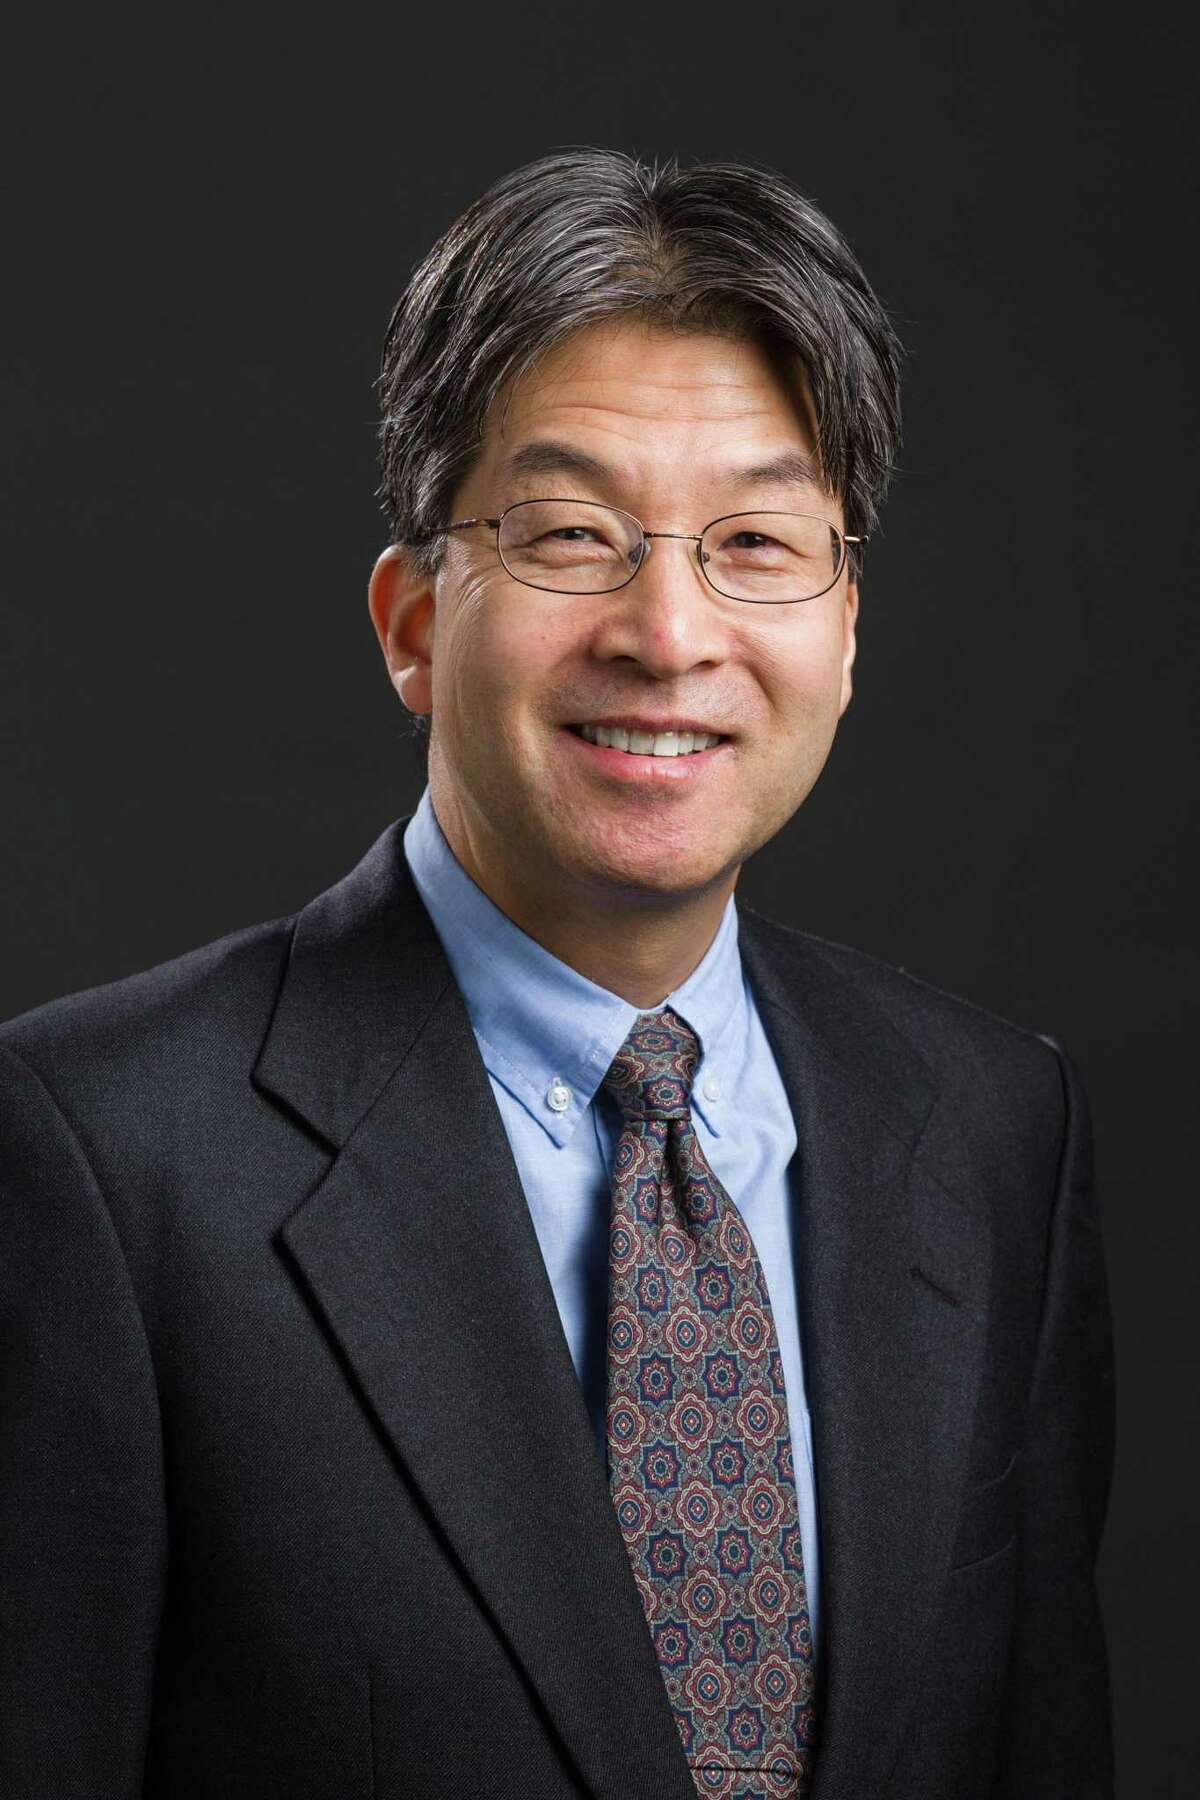 Dr. Albert Ko, a professor of epidemiology and infectious diseases at the Yale School of Public Health and Yale School of Medicine, discussed the coronavirus crisis on Wednesday, Nov. 11, 2020 during the Greenwich Economic Forum.